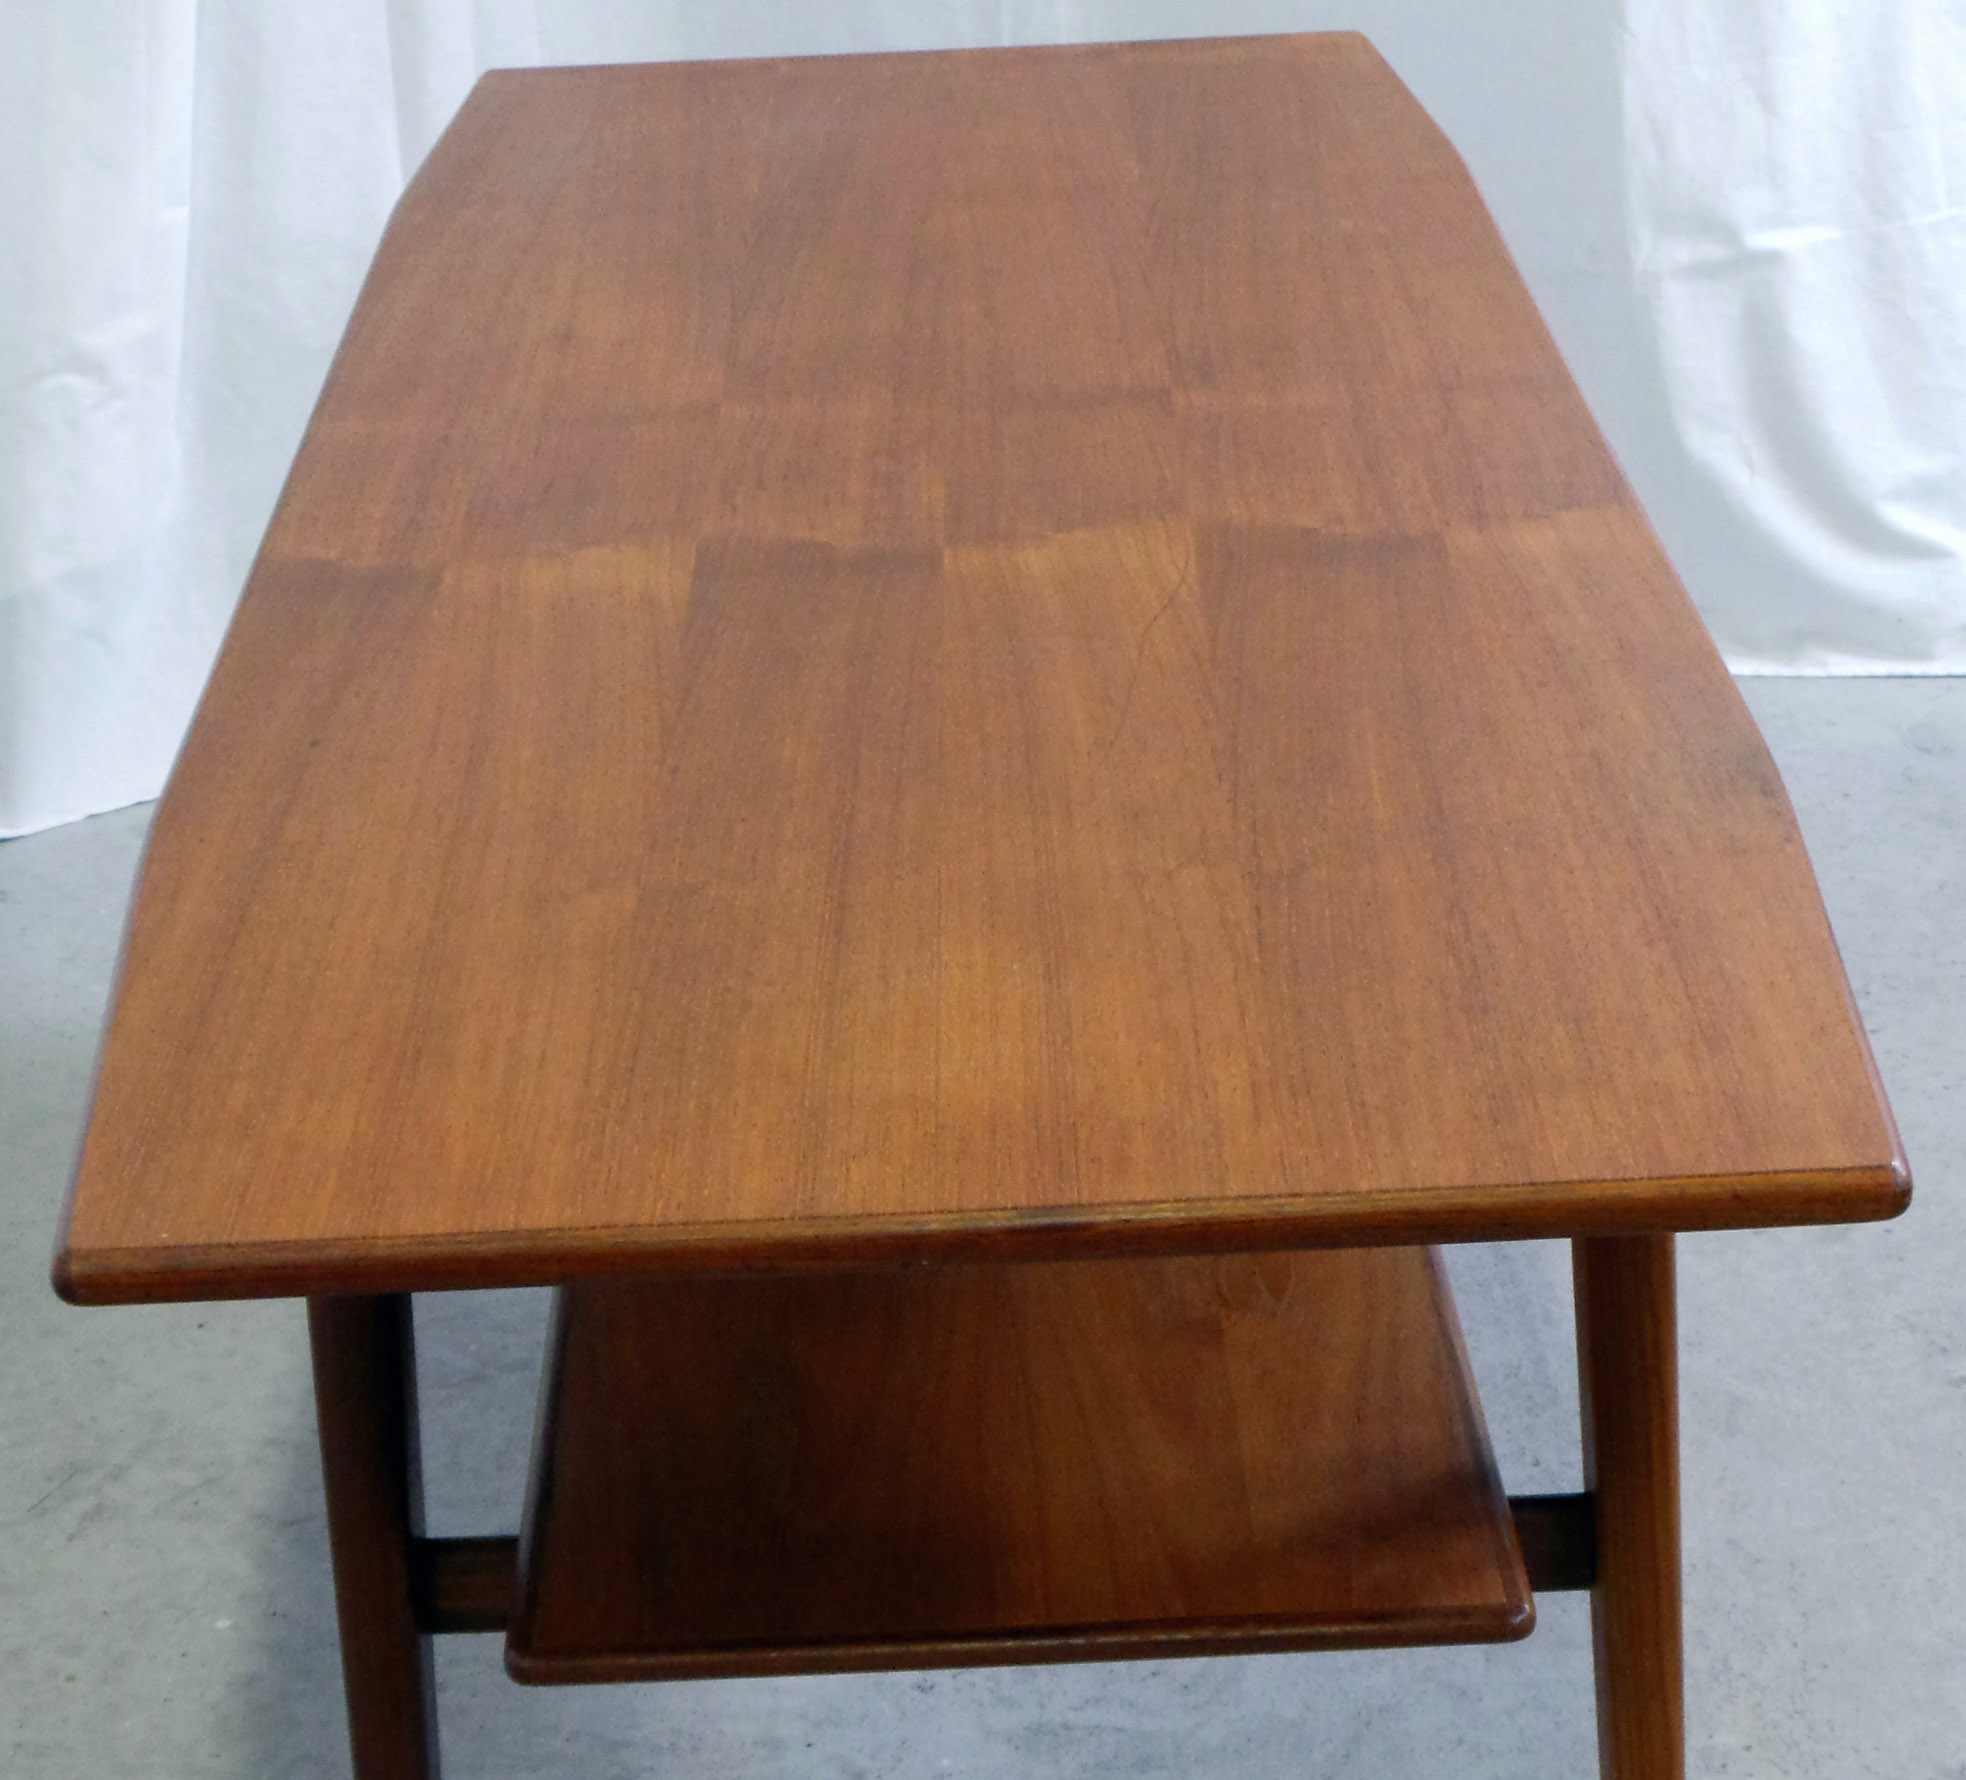 1950 s Danish Modern Teak Coffee Table